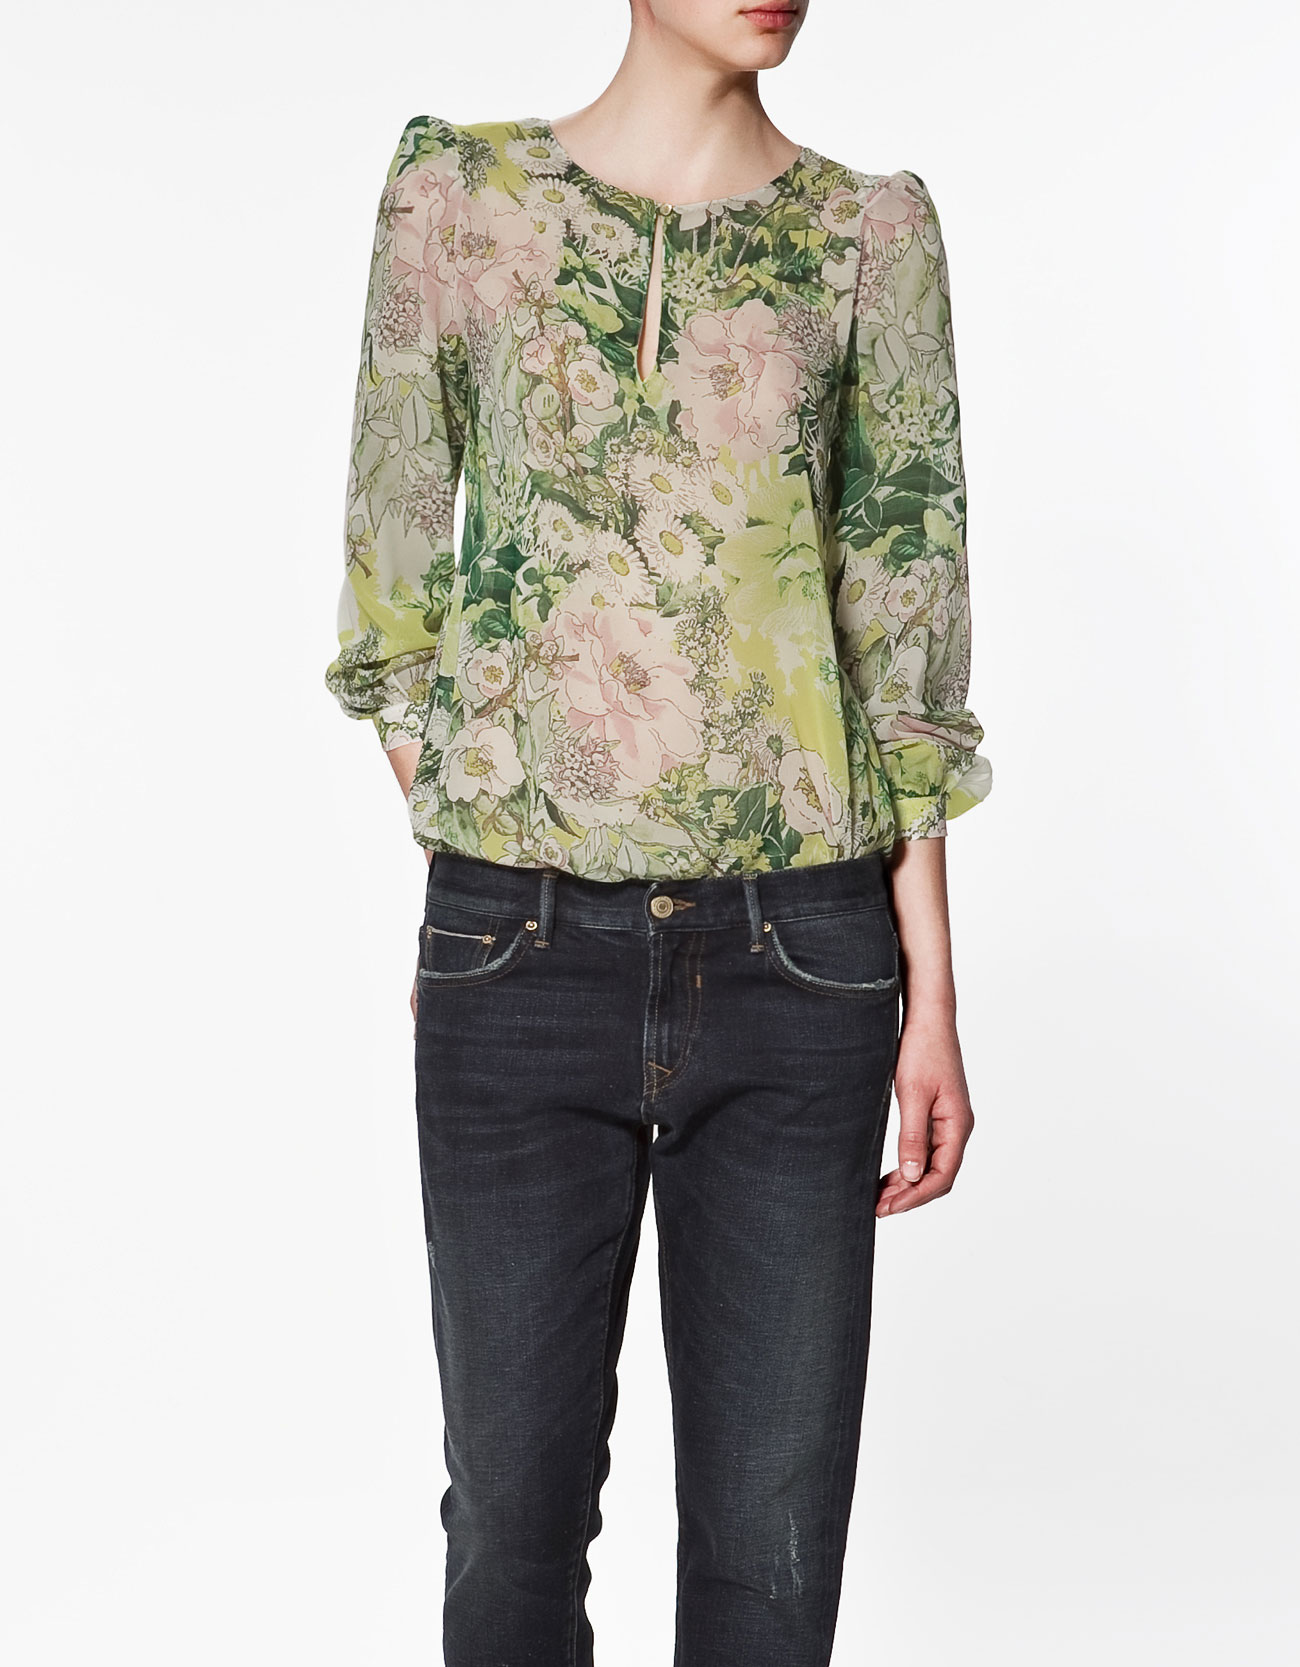 Shirt With Front Teardrop Opening by Zara